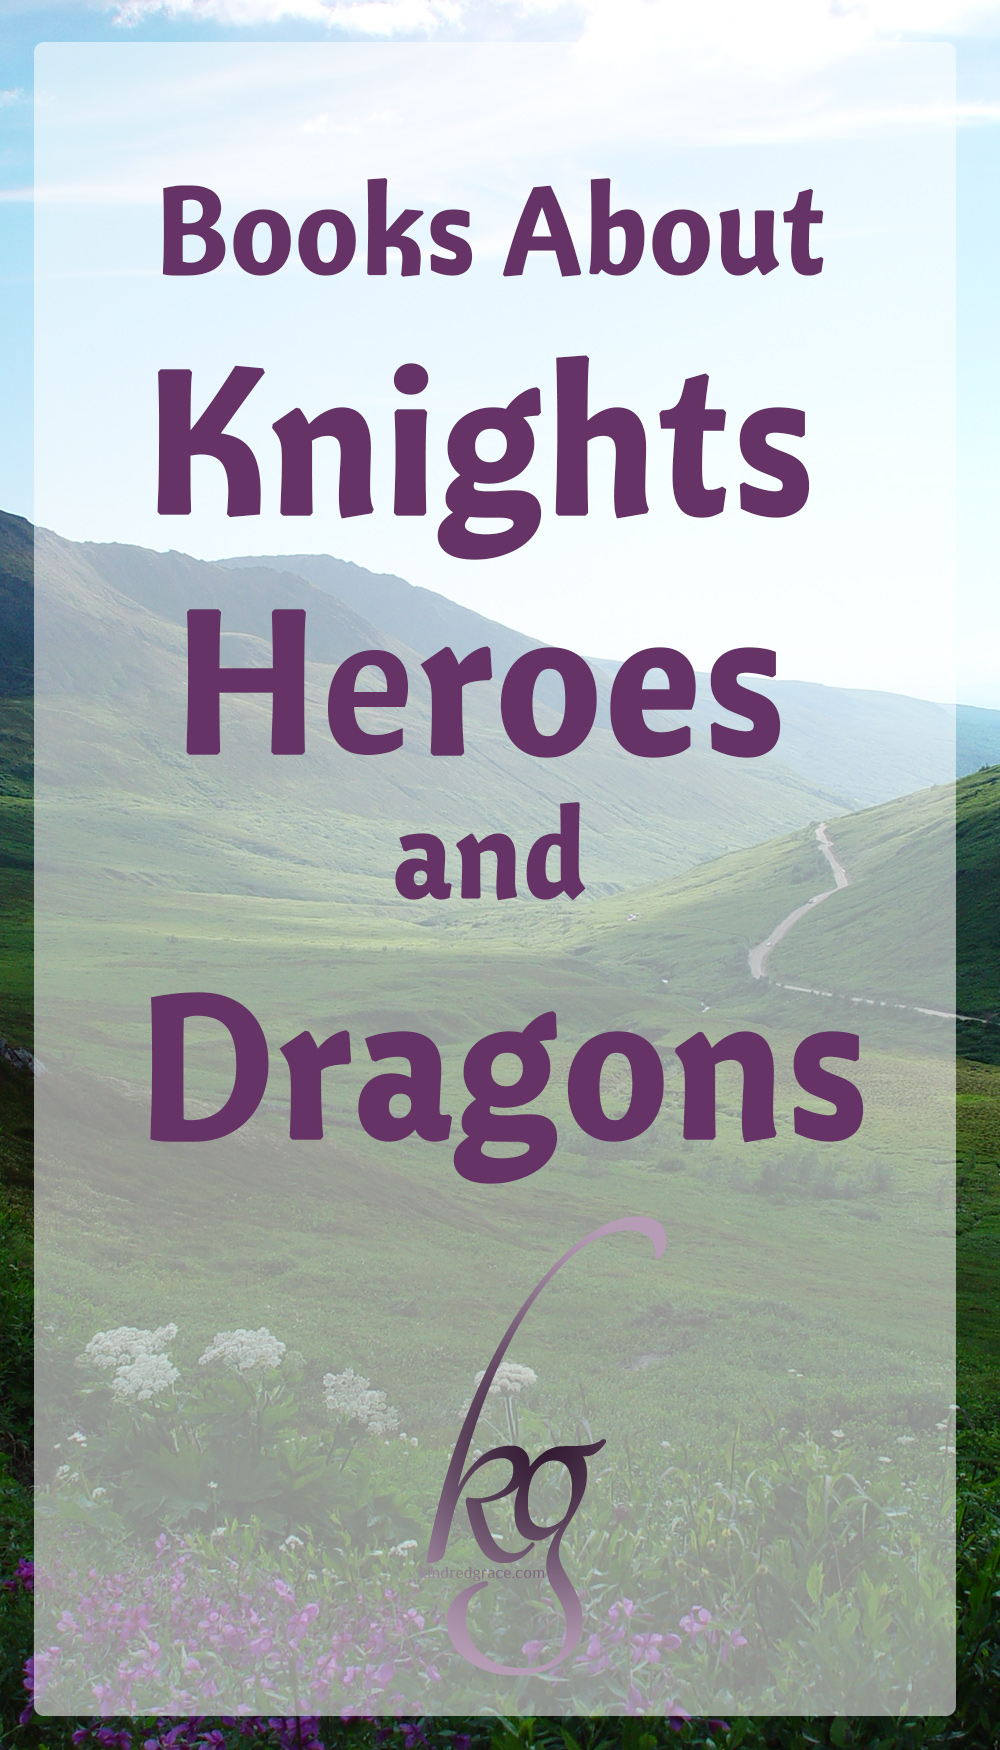 Books About Knights, Heroes, and Dragons via @KindredGrace